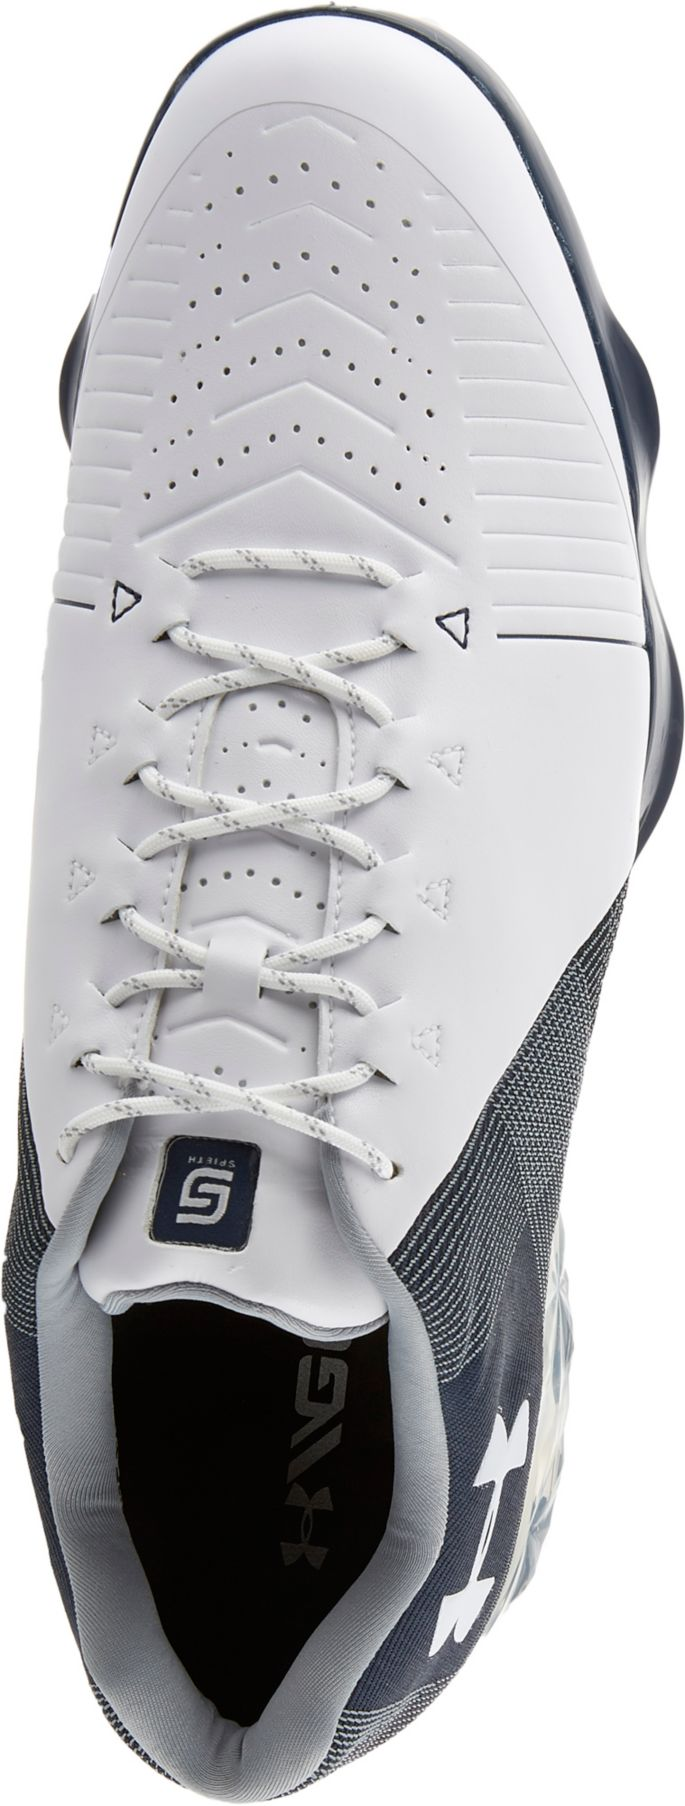 07cfaf0be384 Under Armour Men's Spieth 2 Shoes | Golf Galaxy